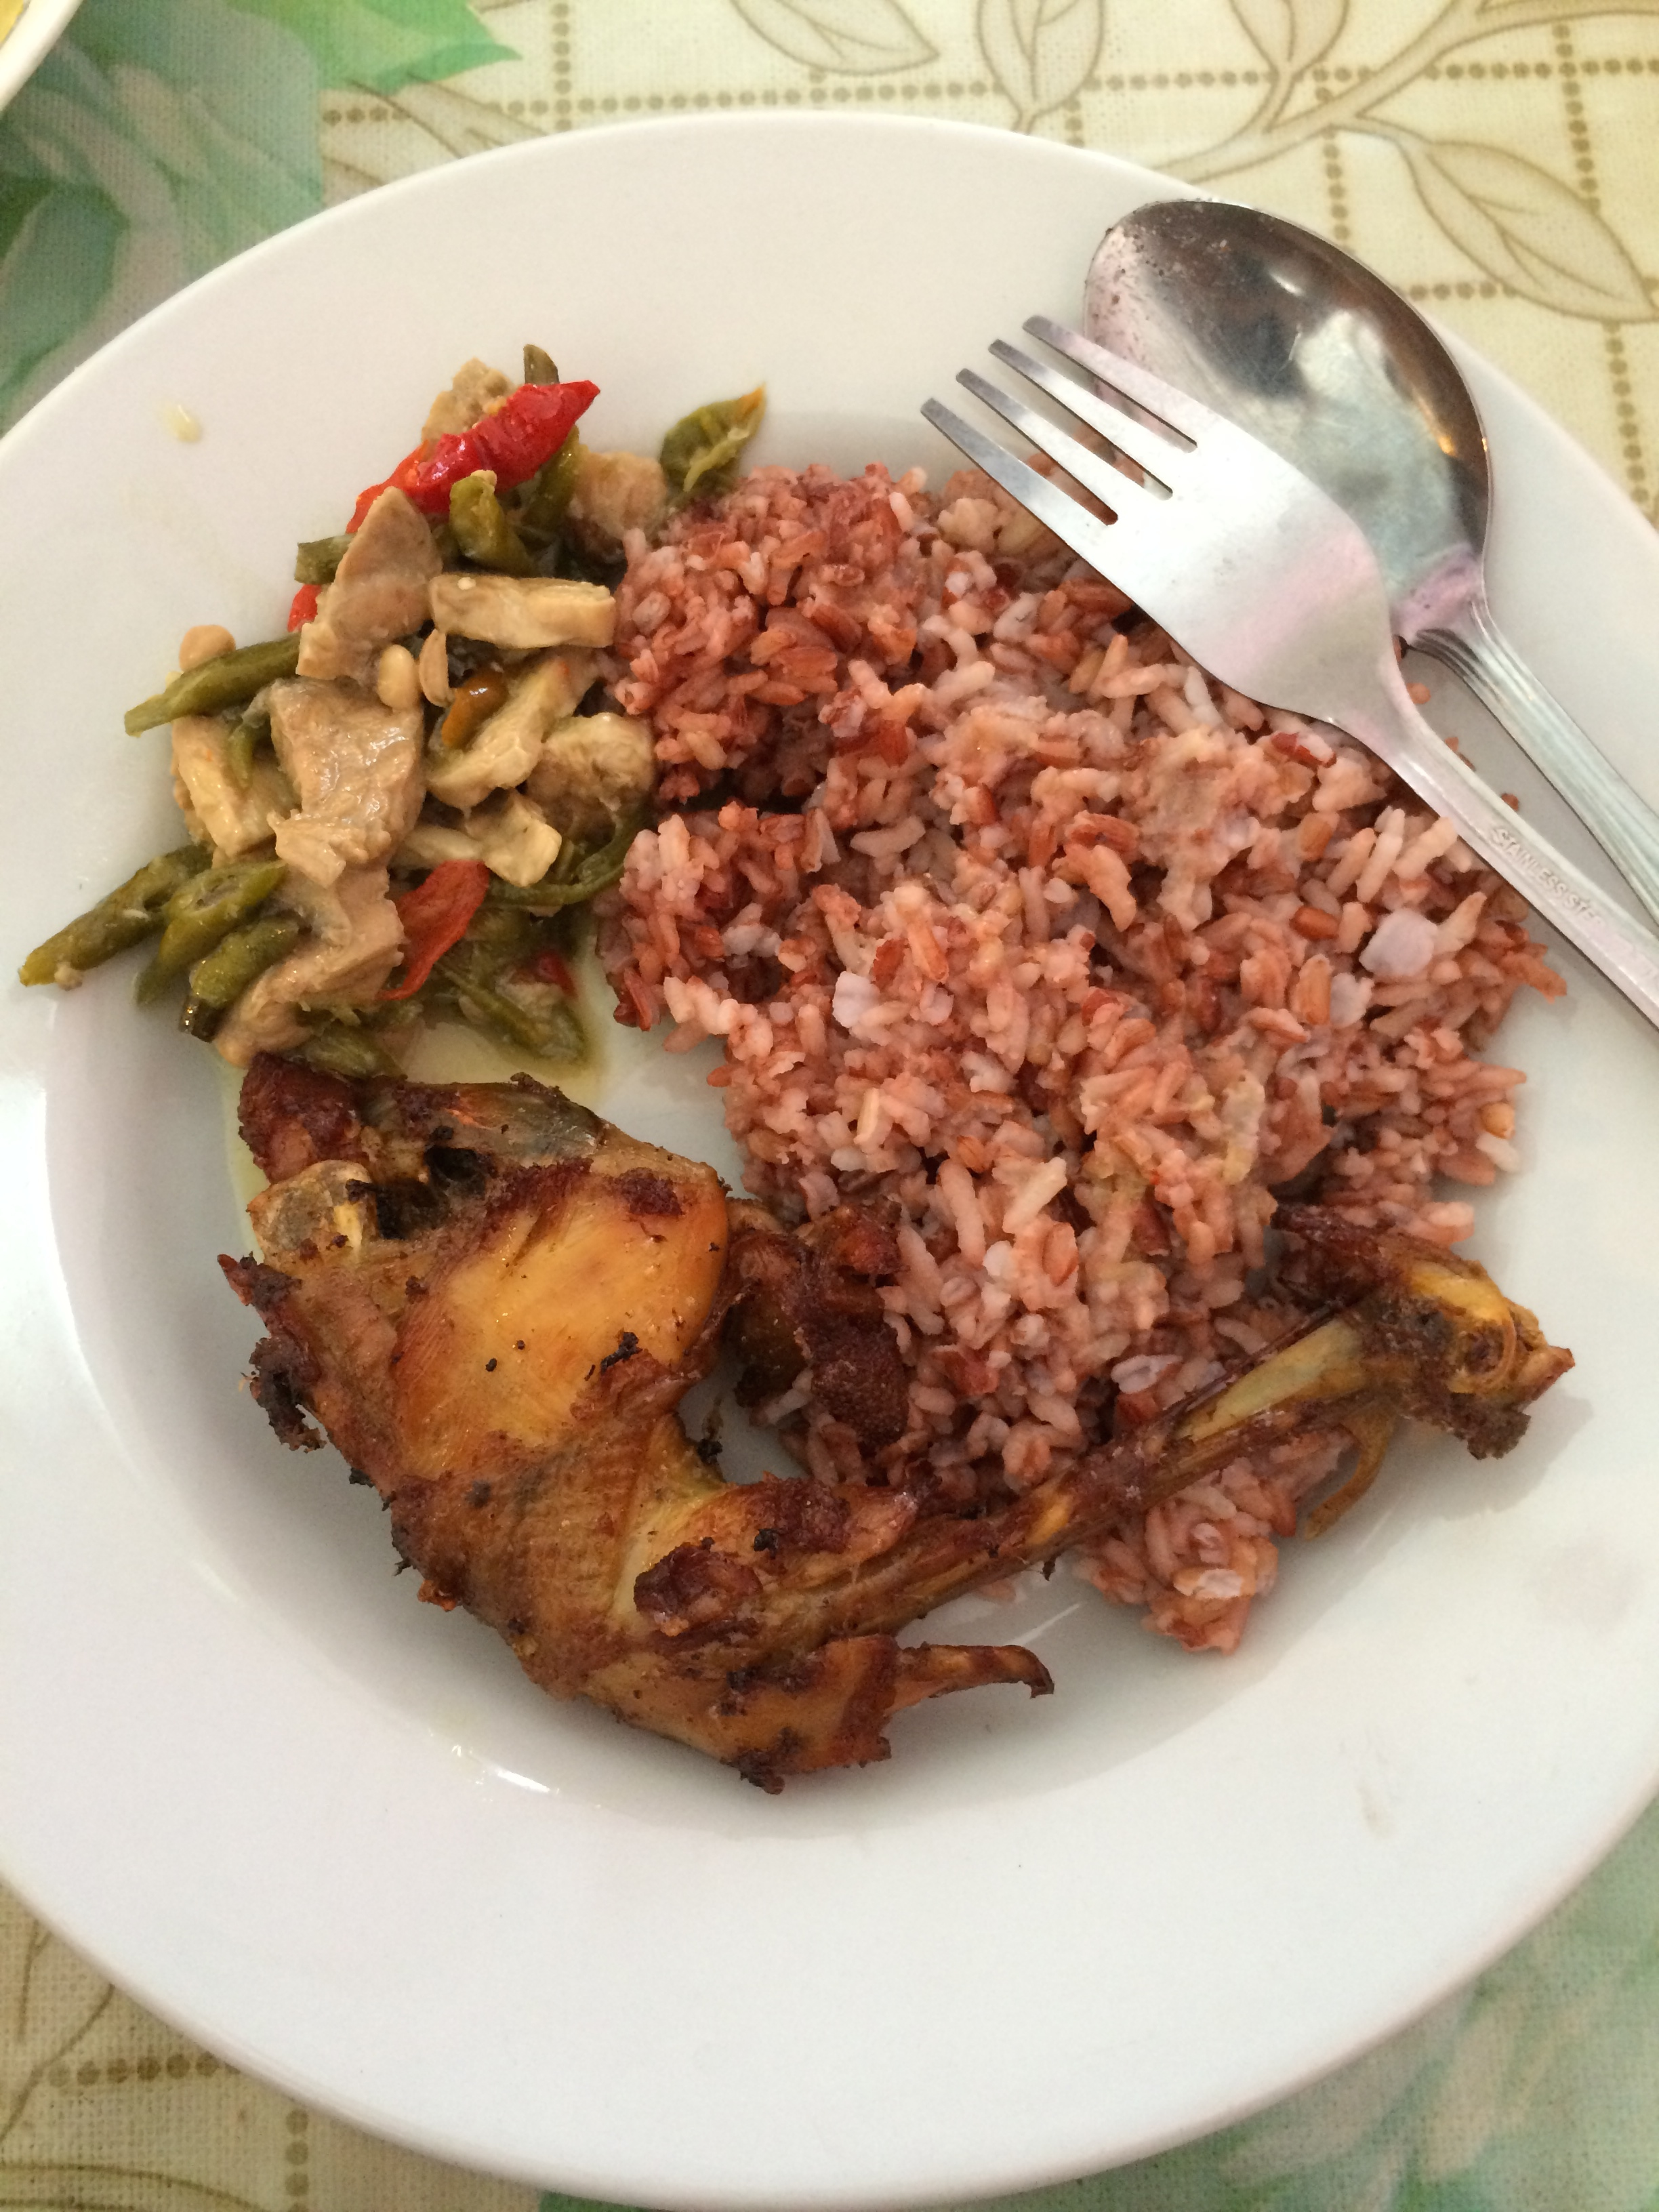 Nasi merah (red rice), sayur lombok ijo and a piece of chicken.